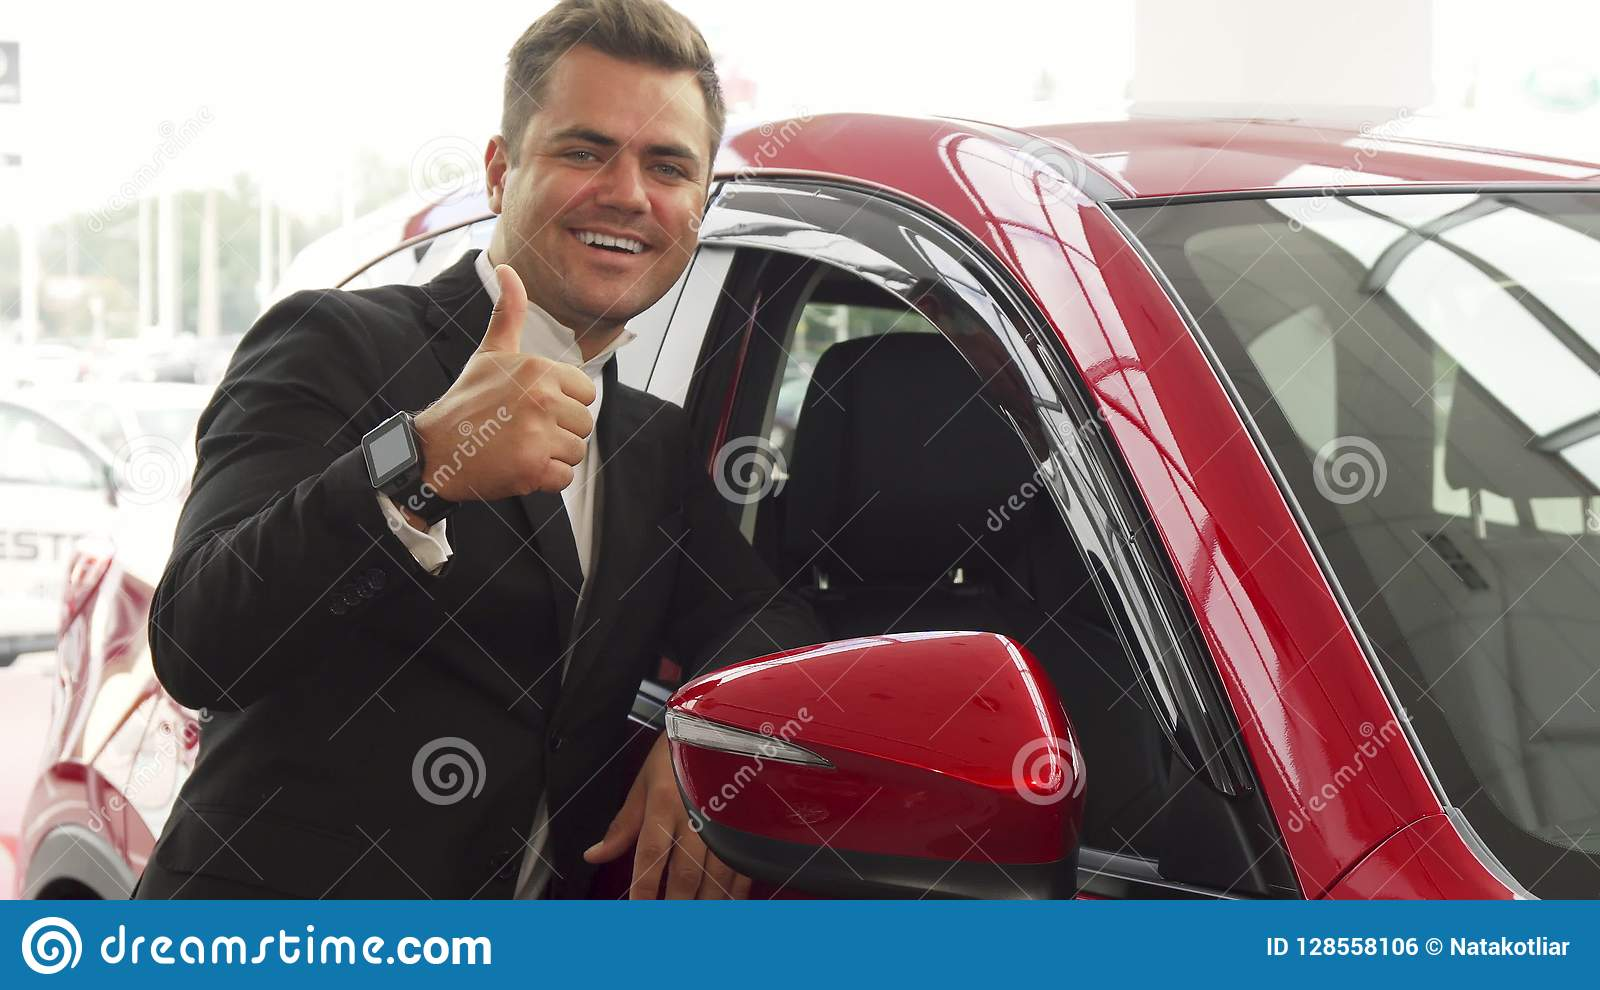 A cheerful salesman points to the excellent quality of the car